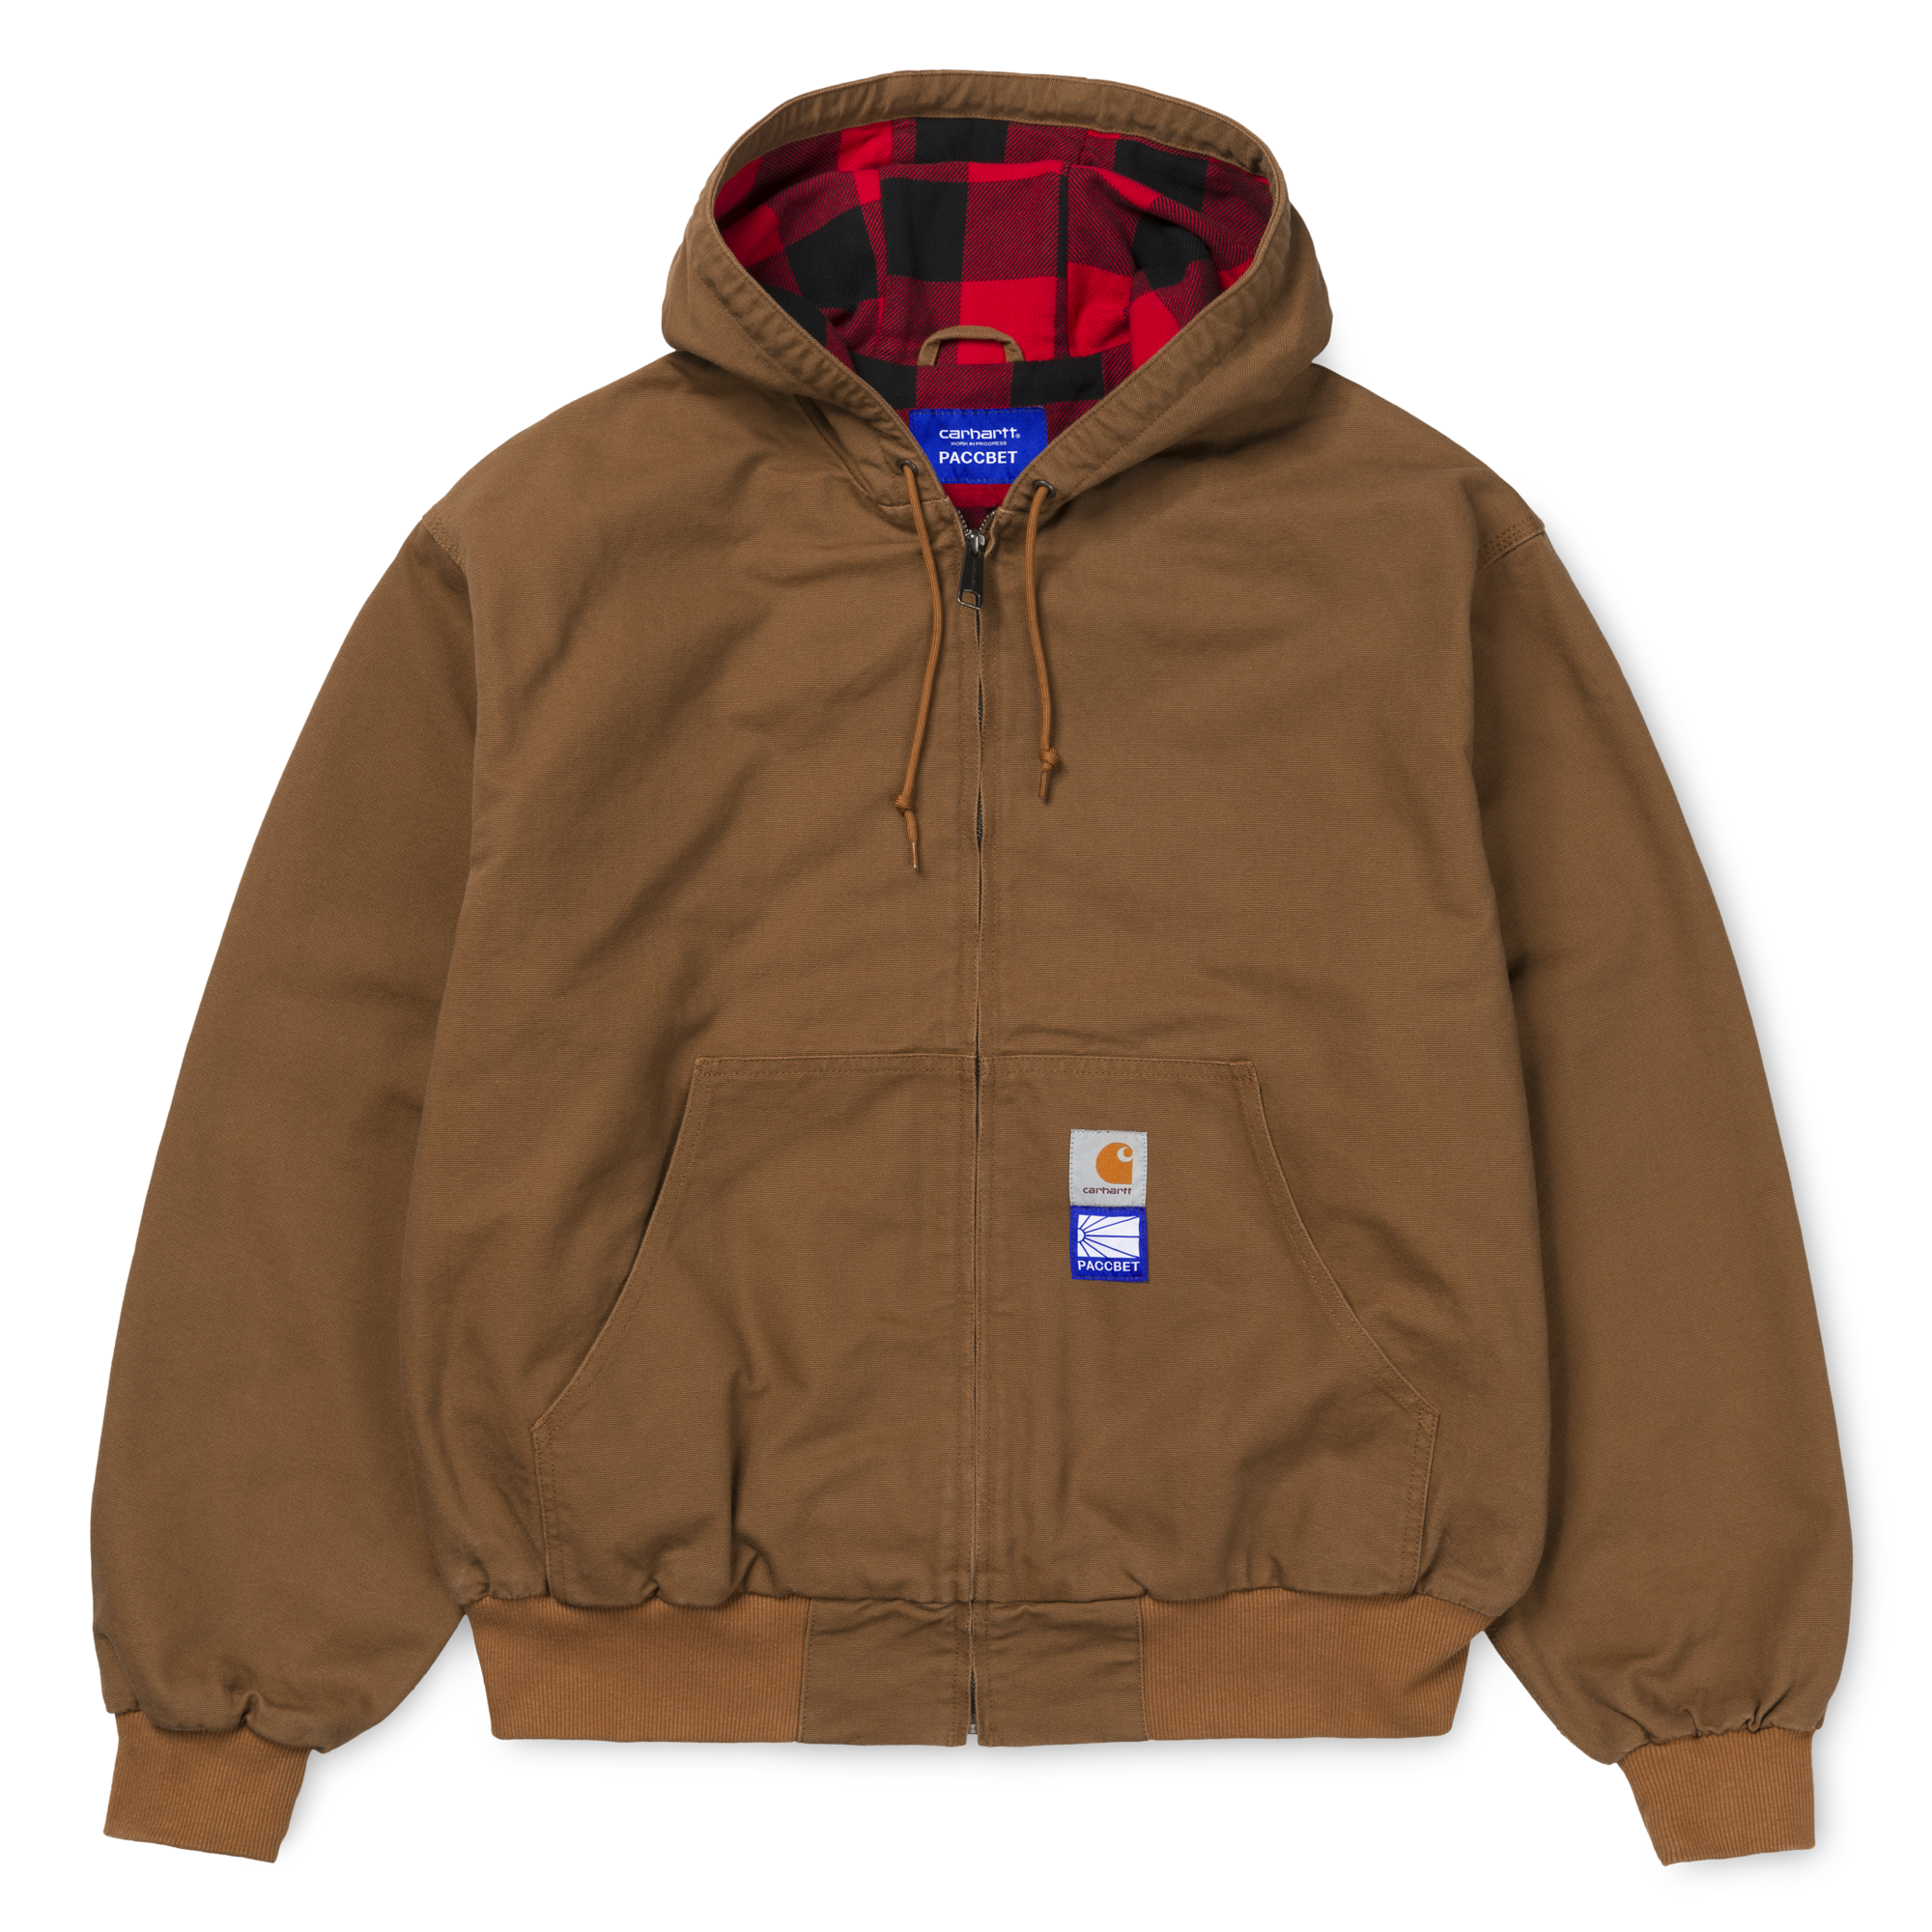 Hoodie lining png. Paccbet x carhartt active